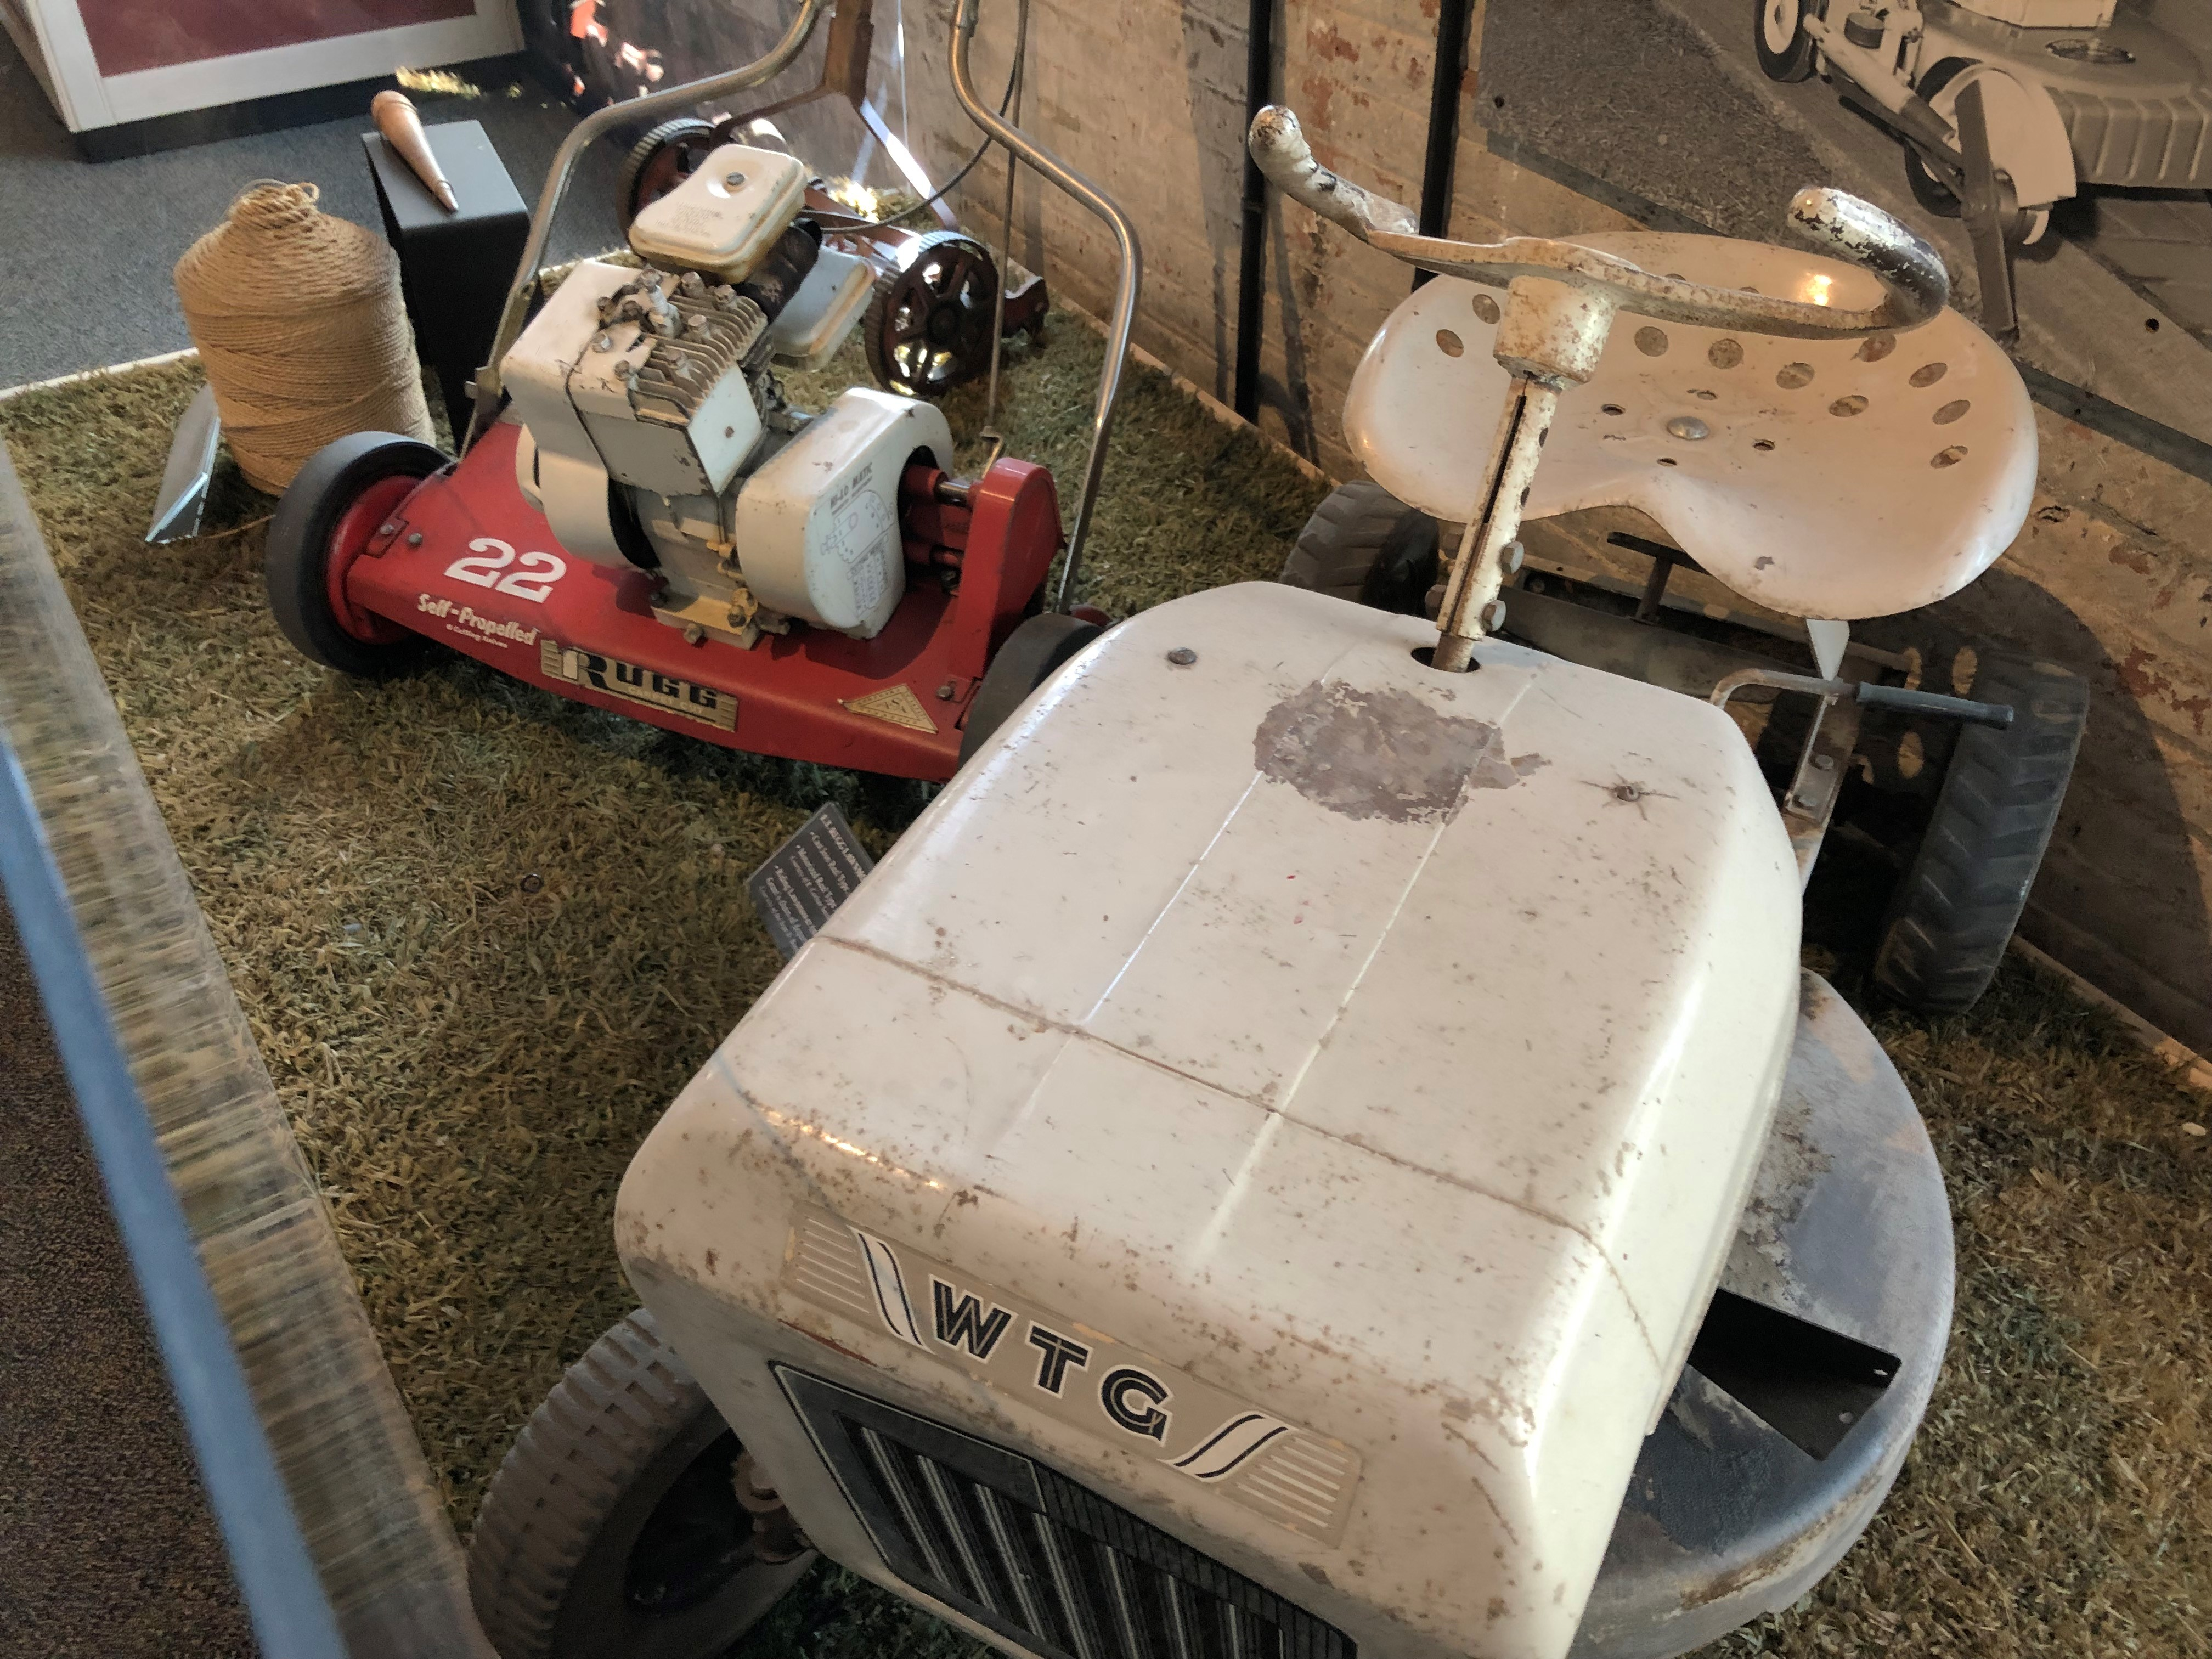 These lawn mowers were made by the E.T. Rugg Company in Newark.